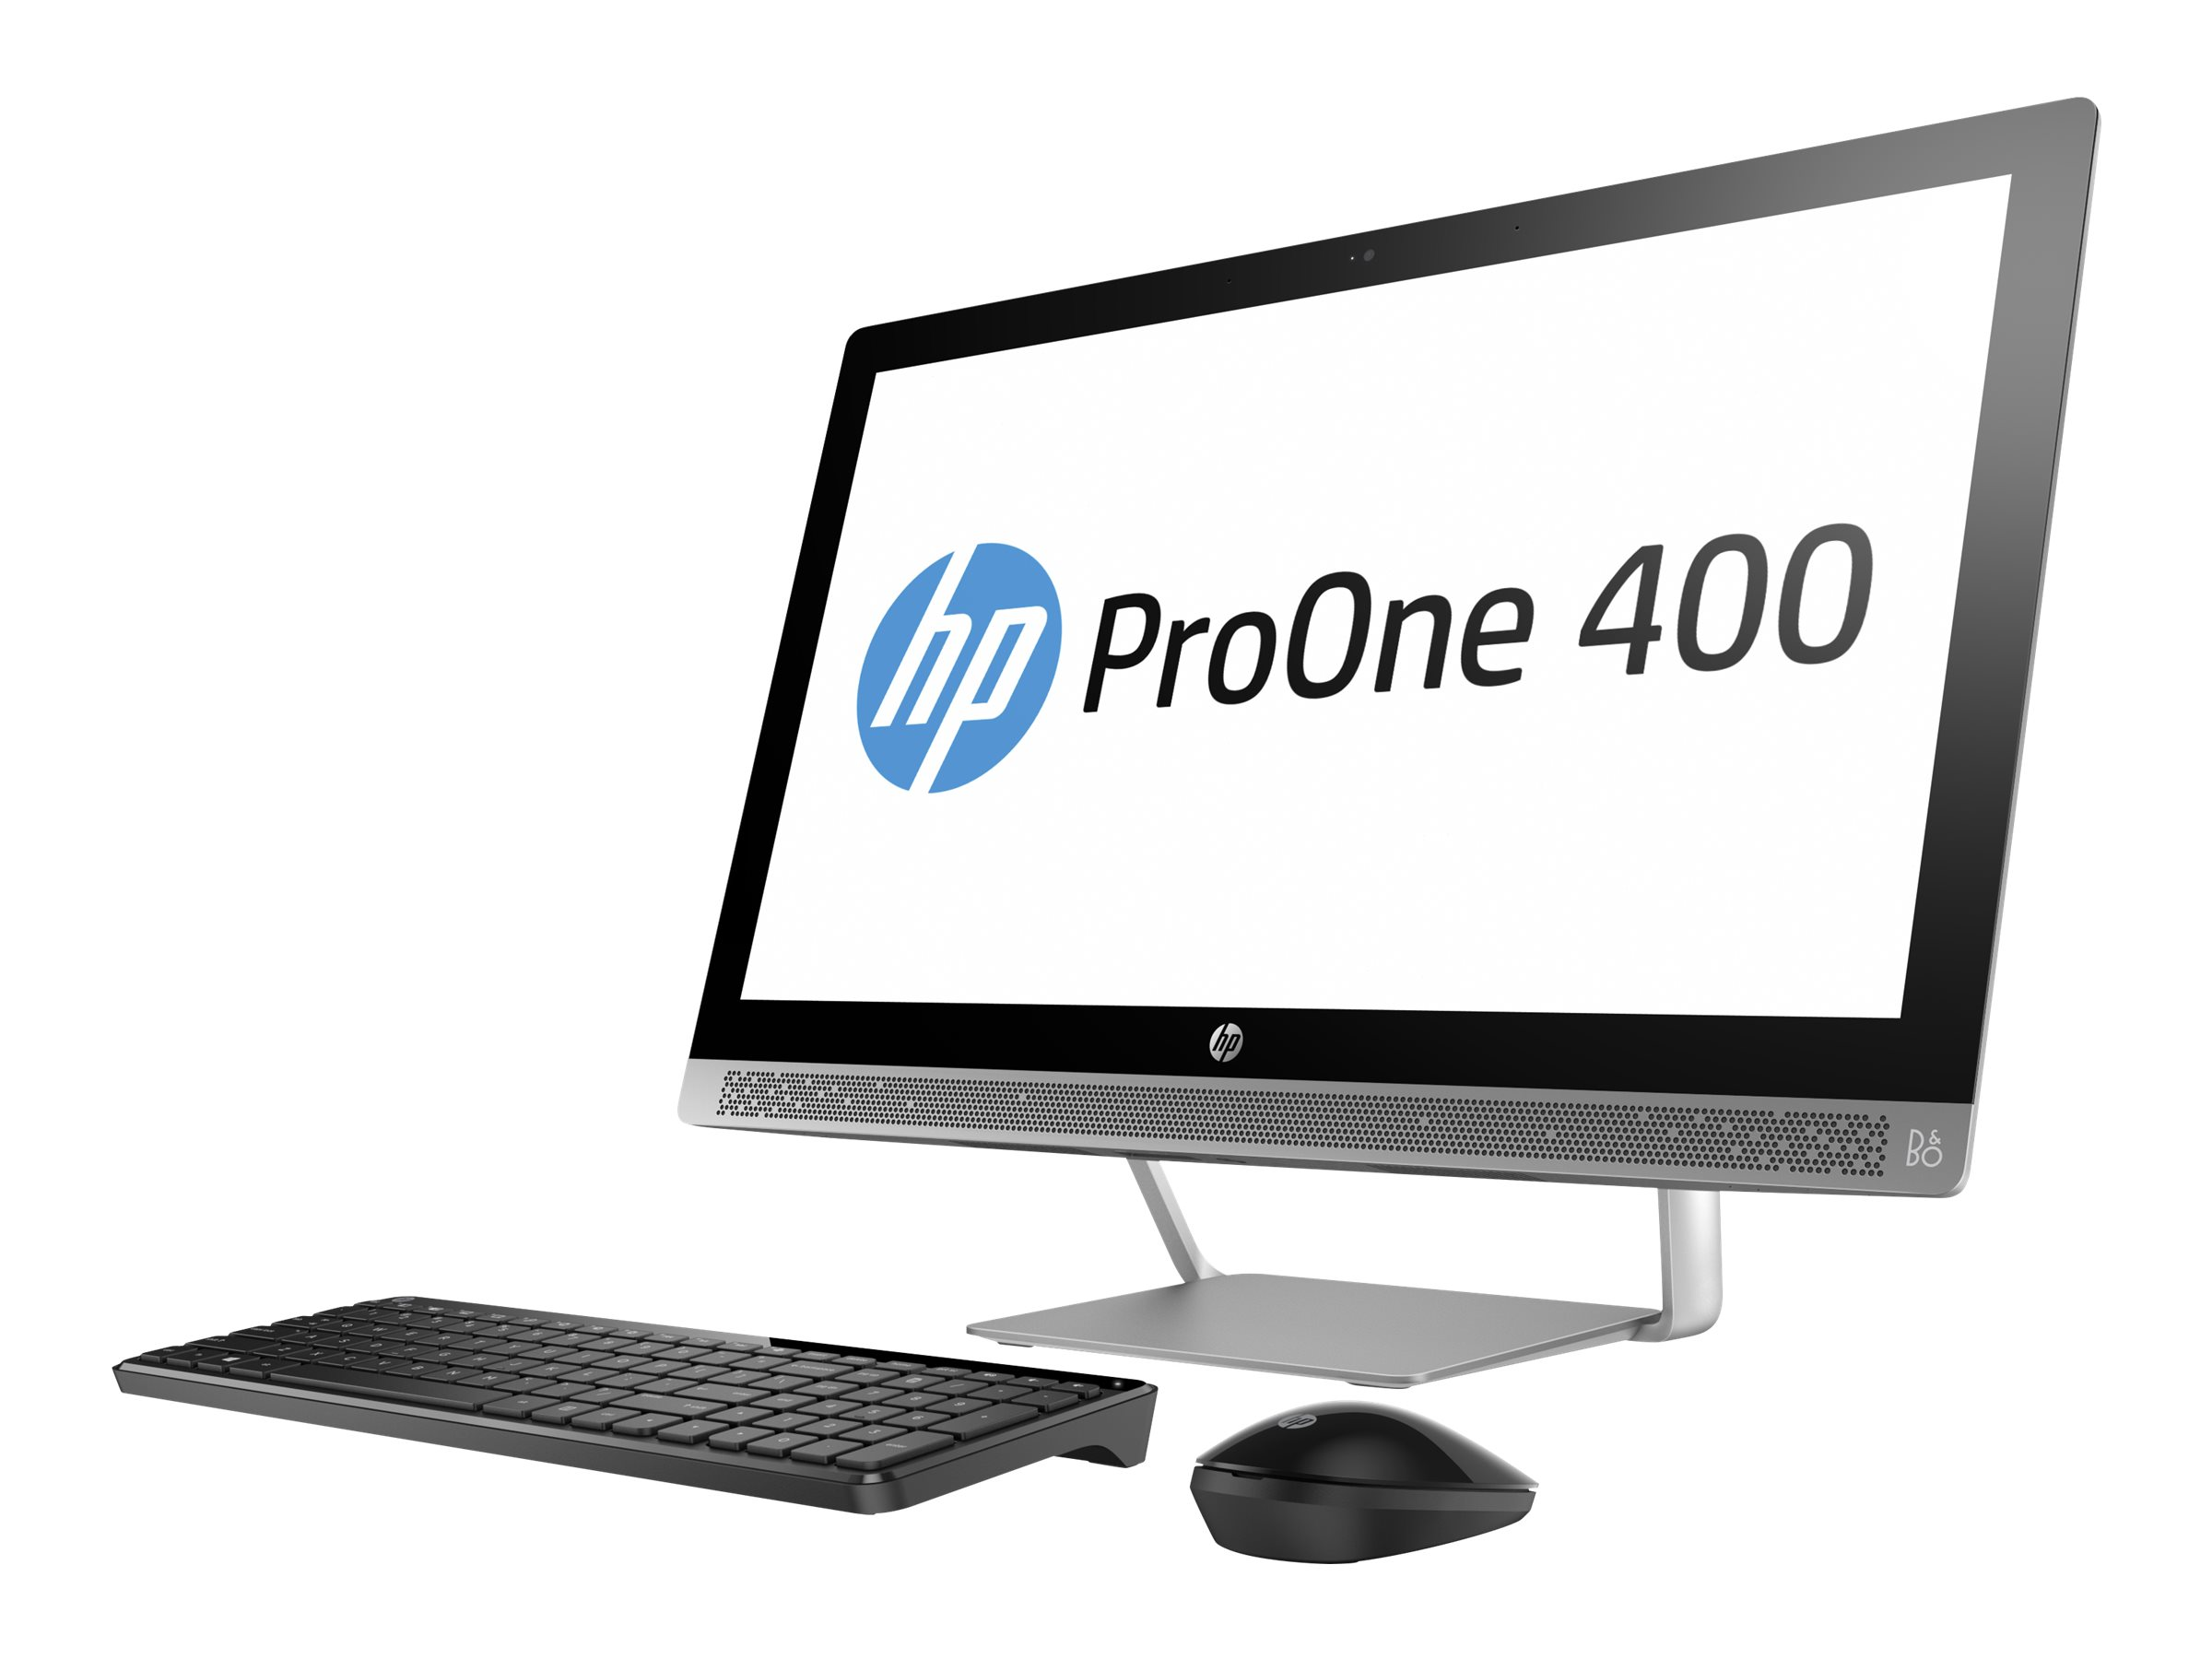 HP ProOne 440 G3 - All-in-One (Komplettlösung) - 1 x Core i3 7100T / 3.4 GHz - RAM 8 GB - SSD 256 GB - DVD-Writer